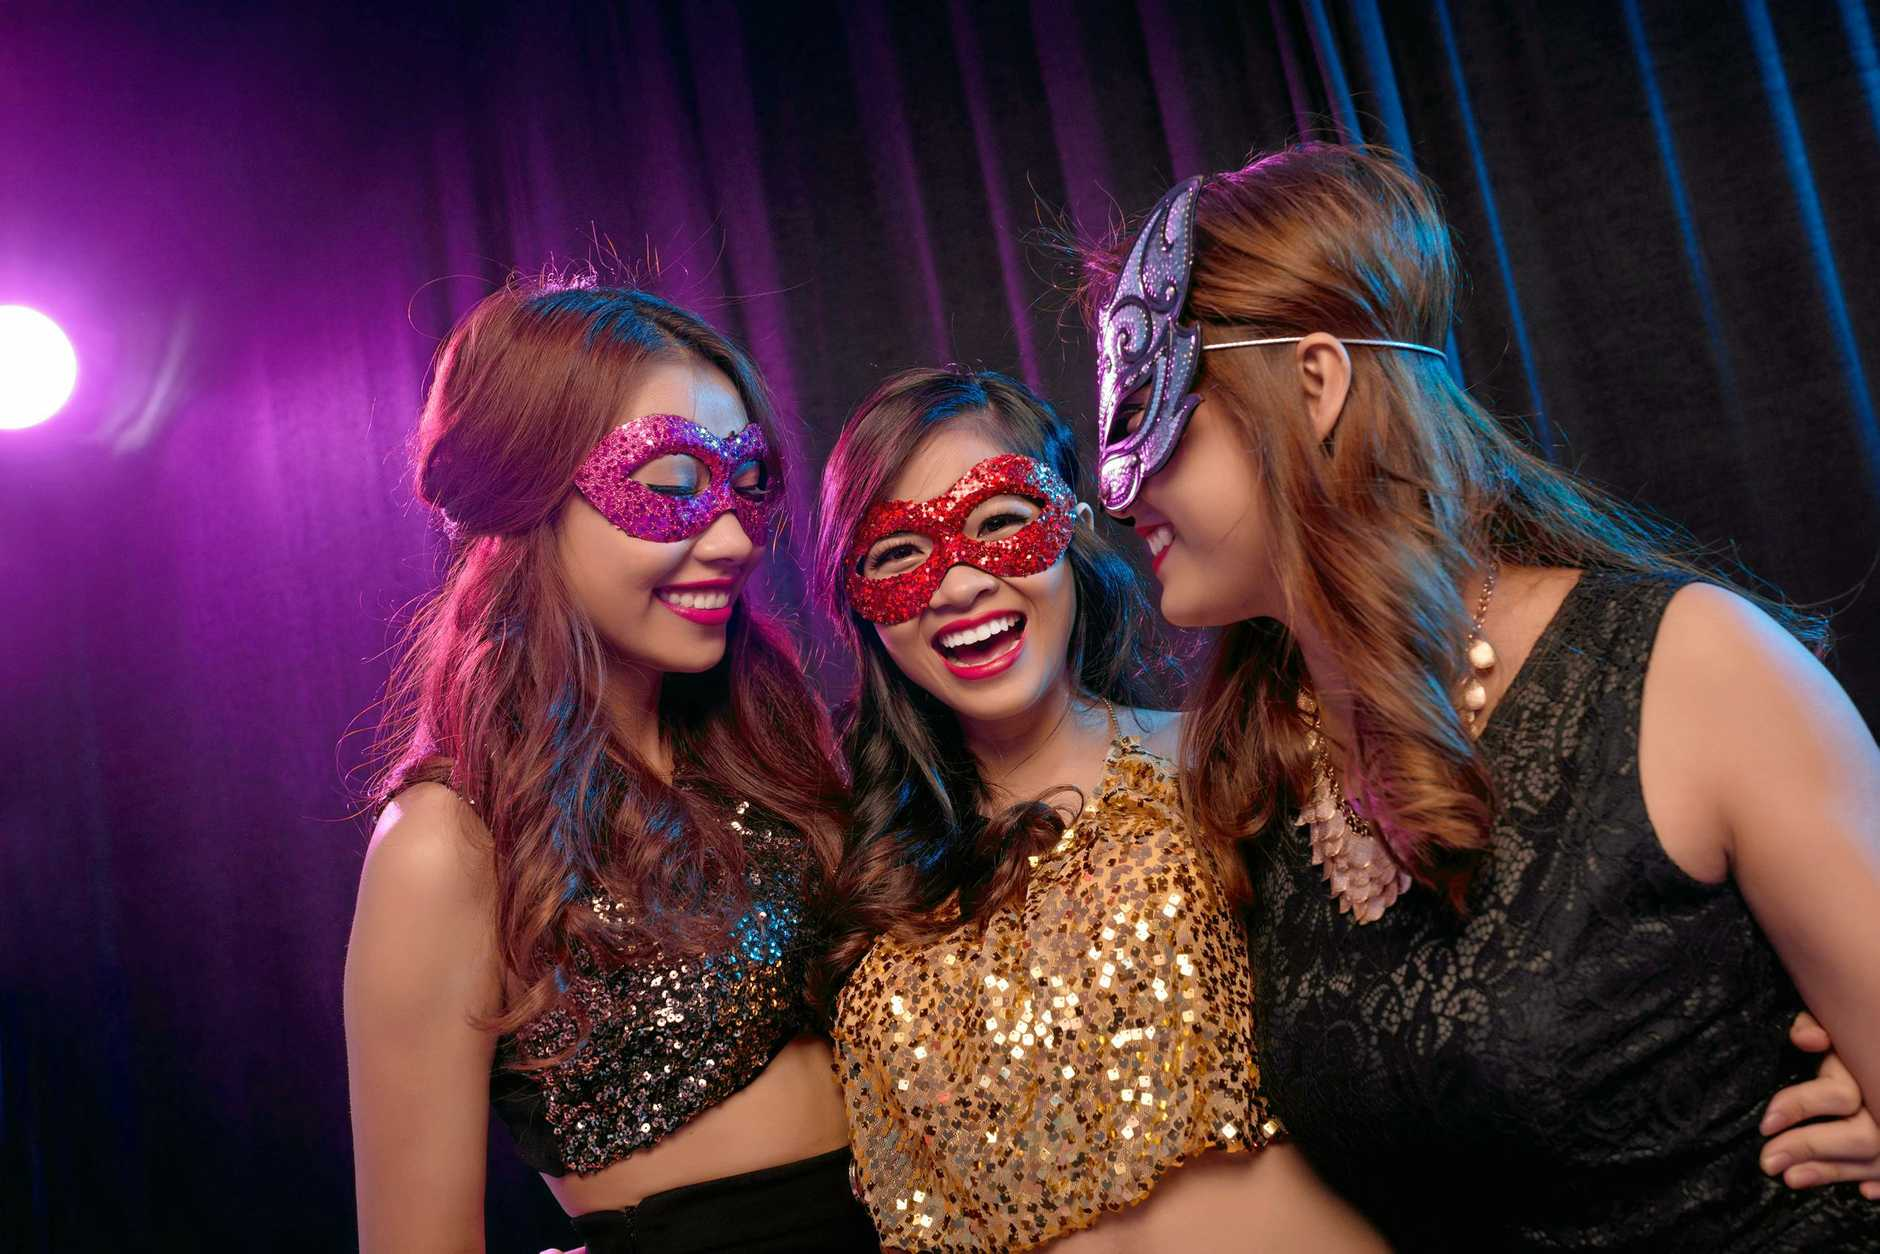 IN DISGUISE: The Metro Hotel is holding a masquerade party.